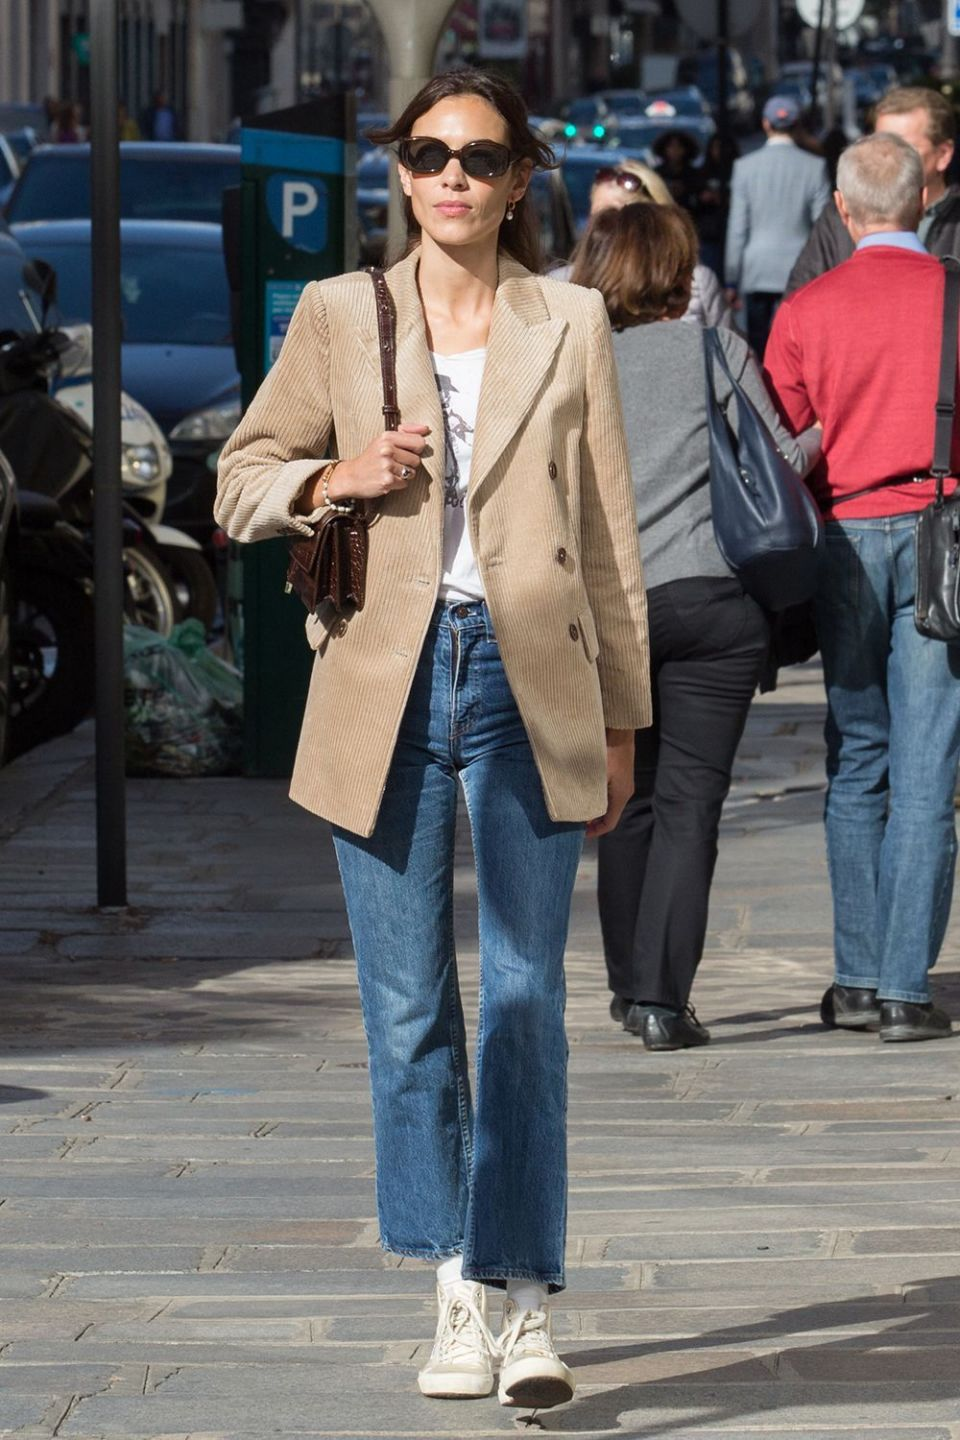 Alexa chung blazer and straight cut jeans outfit